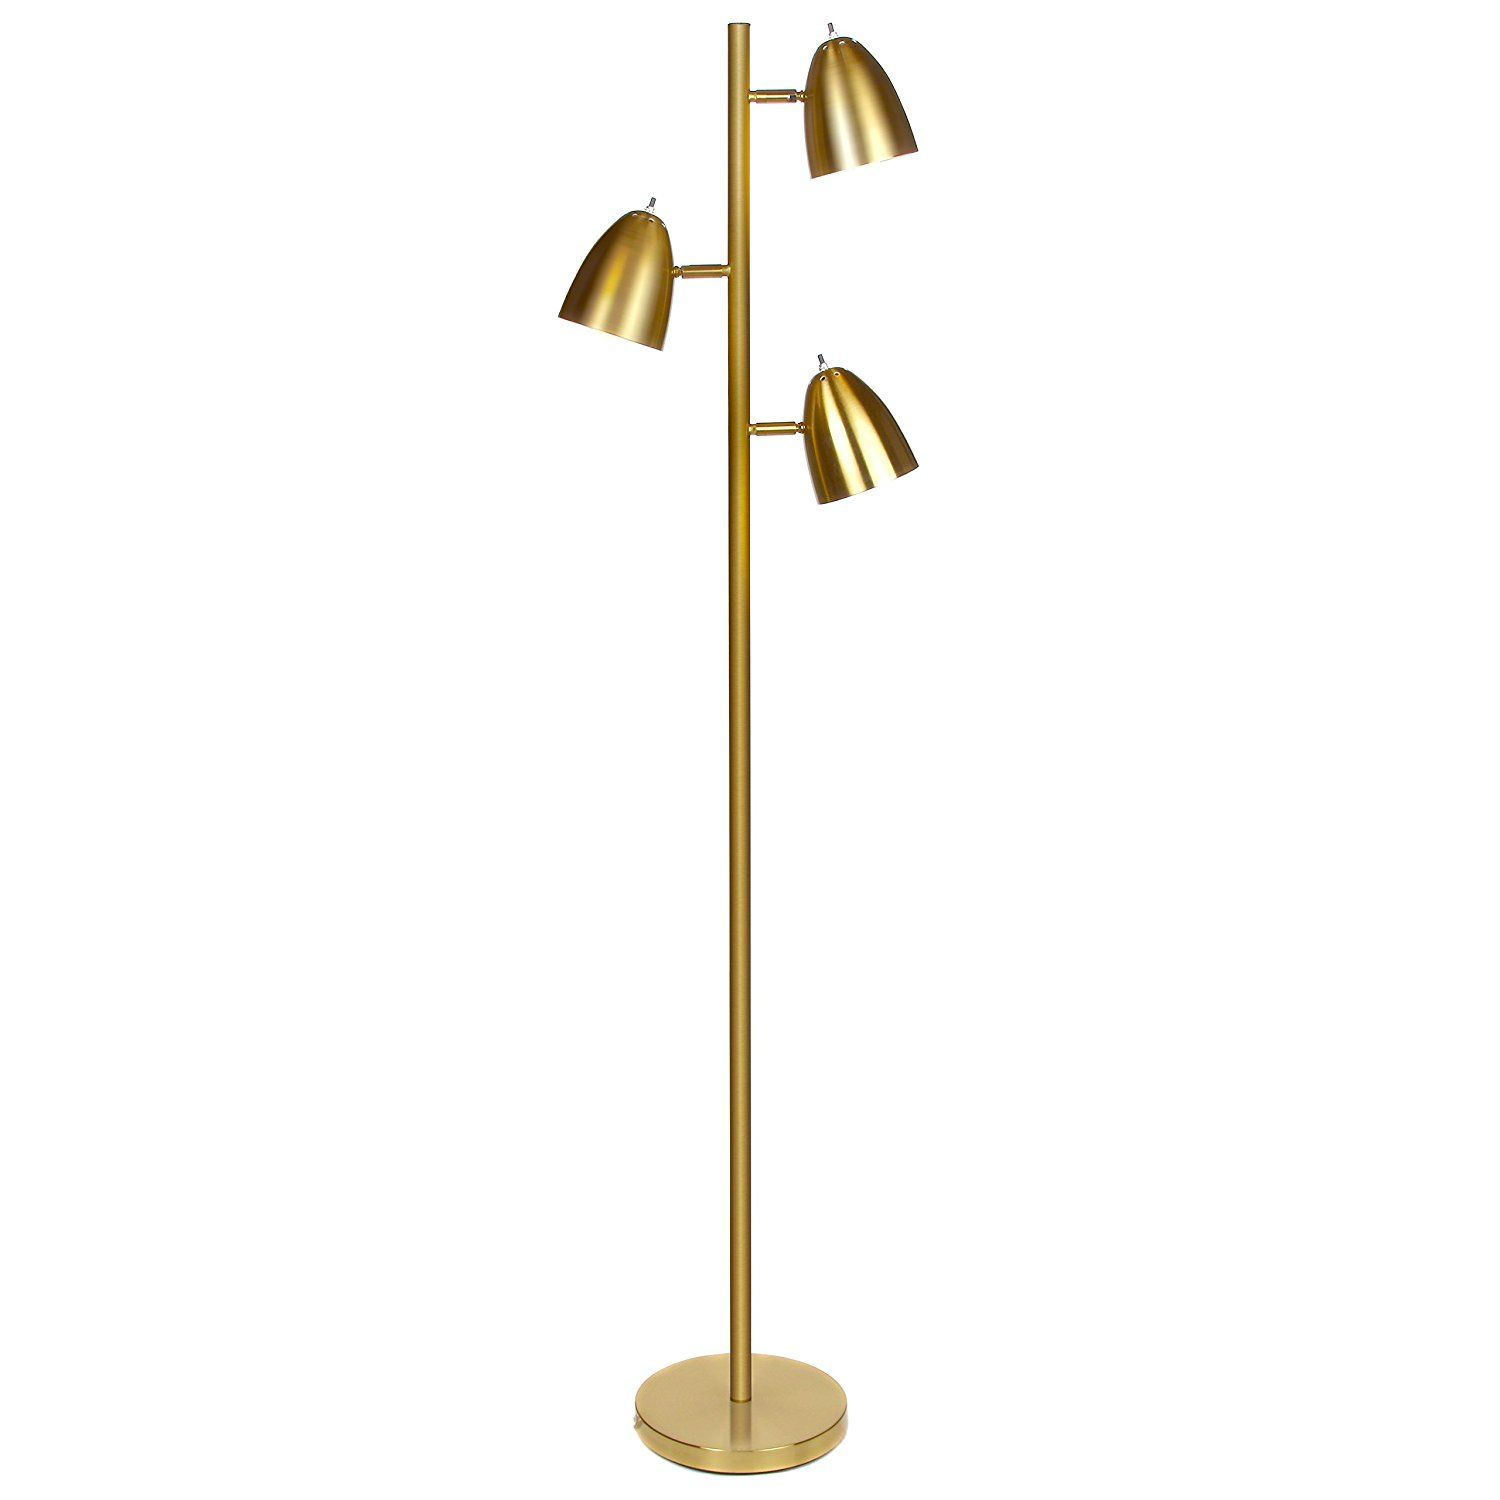 Brightech Jacob Led Reading And Floor Lamp Classy Modern Standing Industrial 3 Way Tree Lamp Adjustable Omnidirectio Lamps Living Room Pole Lamps Floor Lamp